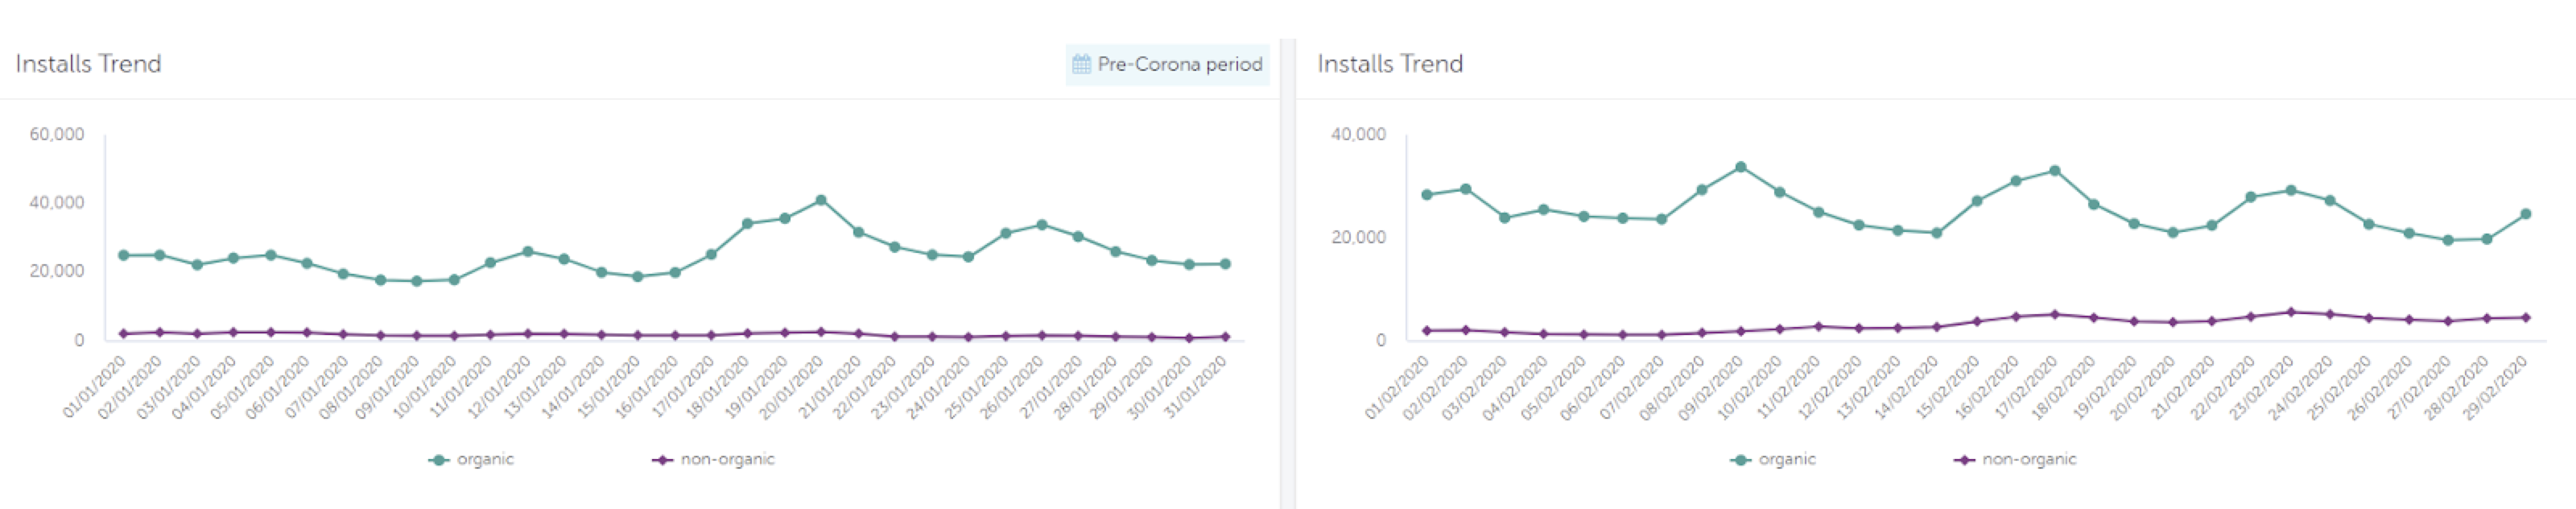 Pre and post Covid-19 app marketing trends